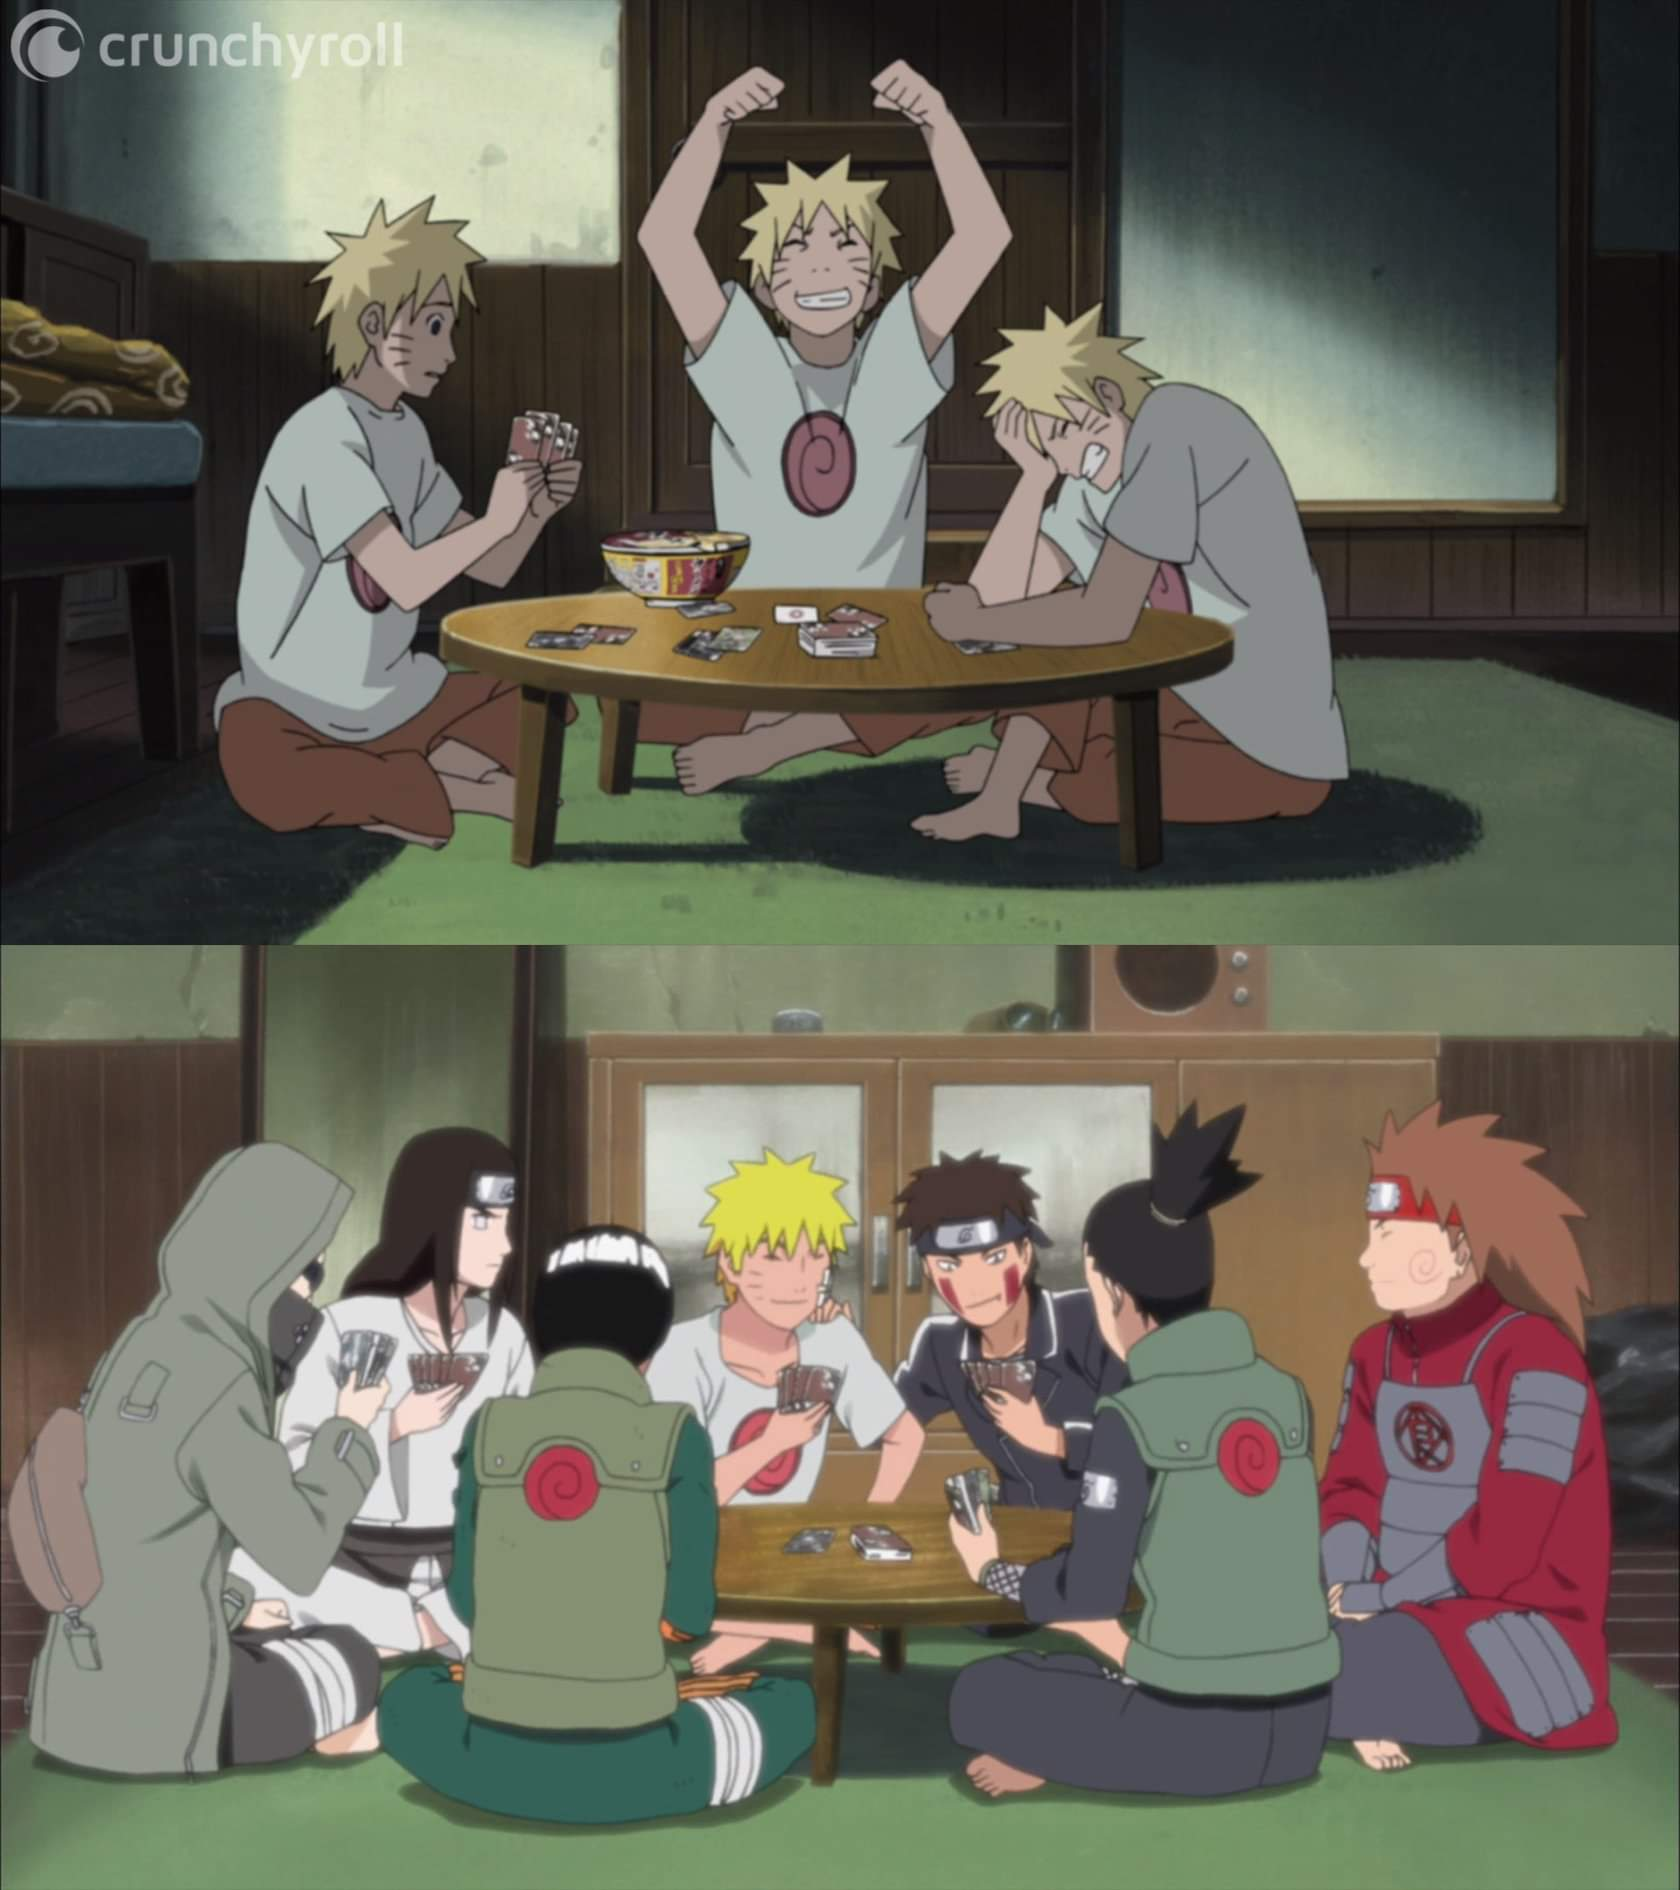 ( clones / real friends) Scene 1- Naruto with clones of himself ; Scene 2 - Naruto with real friends